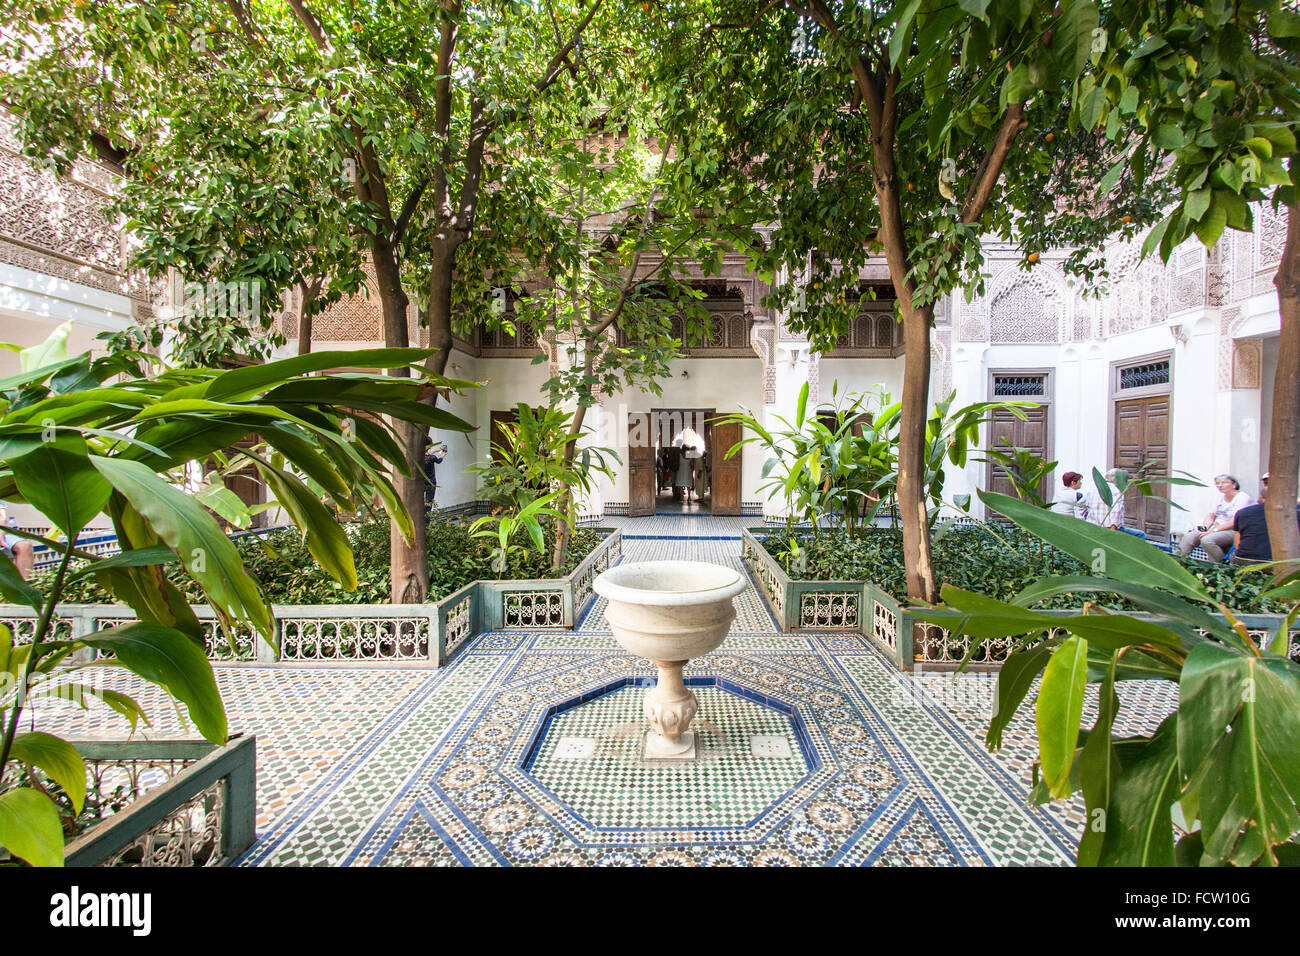 Courtyard of the Bahia Palace in Marrakech, Morocco. - Stock Image